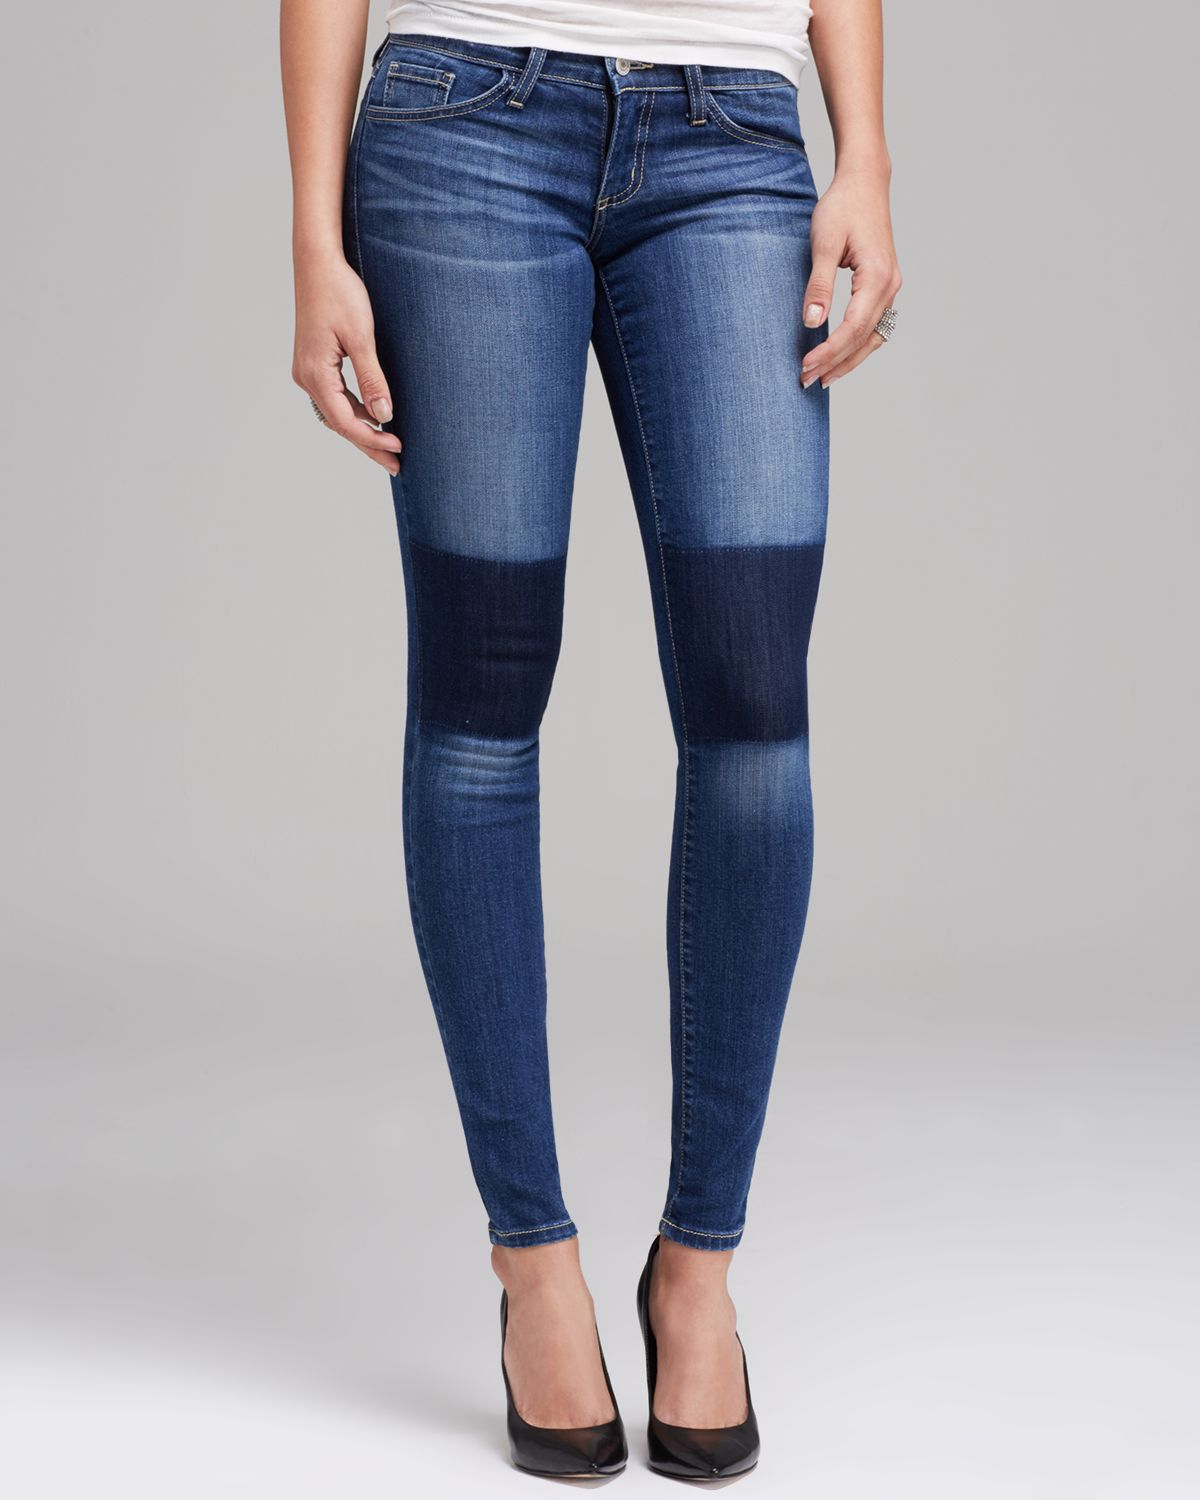 Flying Monkey Jeans - Washed Knee Patched Skinny in Medium Blue | Bloomingdale's